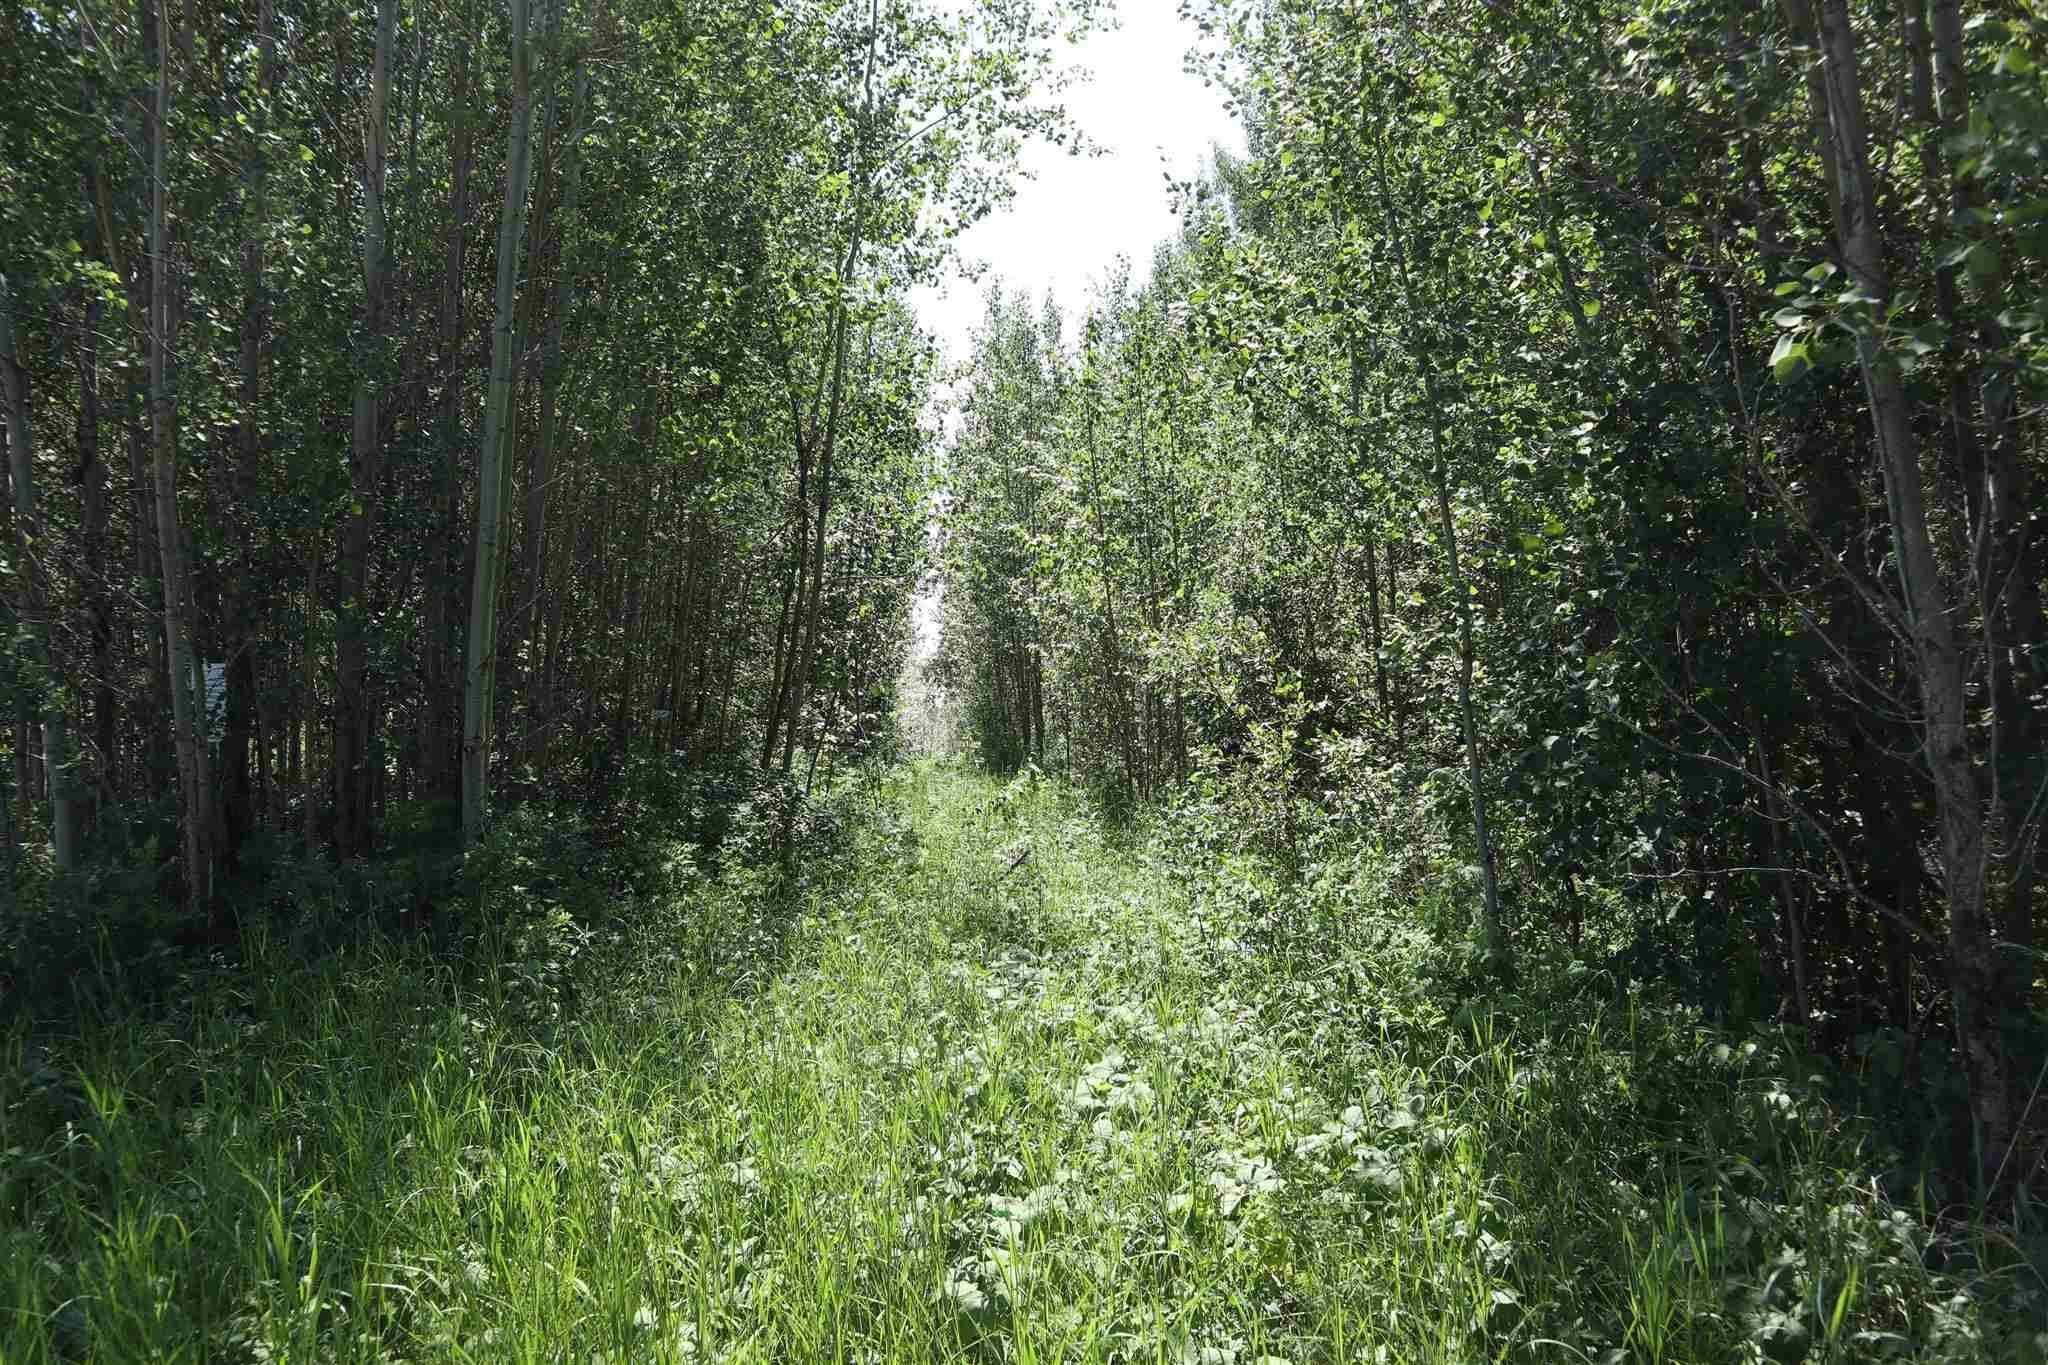 Main Photo: TWP 494 RR 42: Rural Leduc County Rural Land/Vacant Lot for sale : MLS®# E4252228